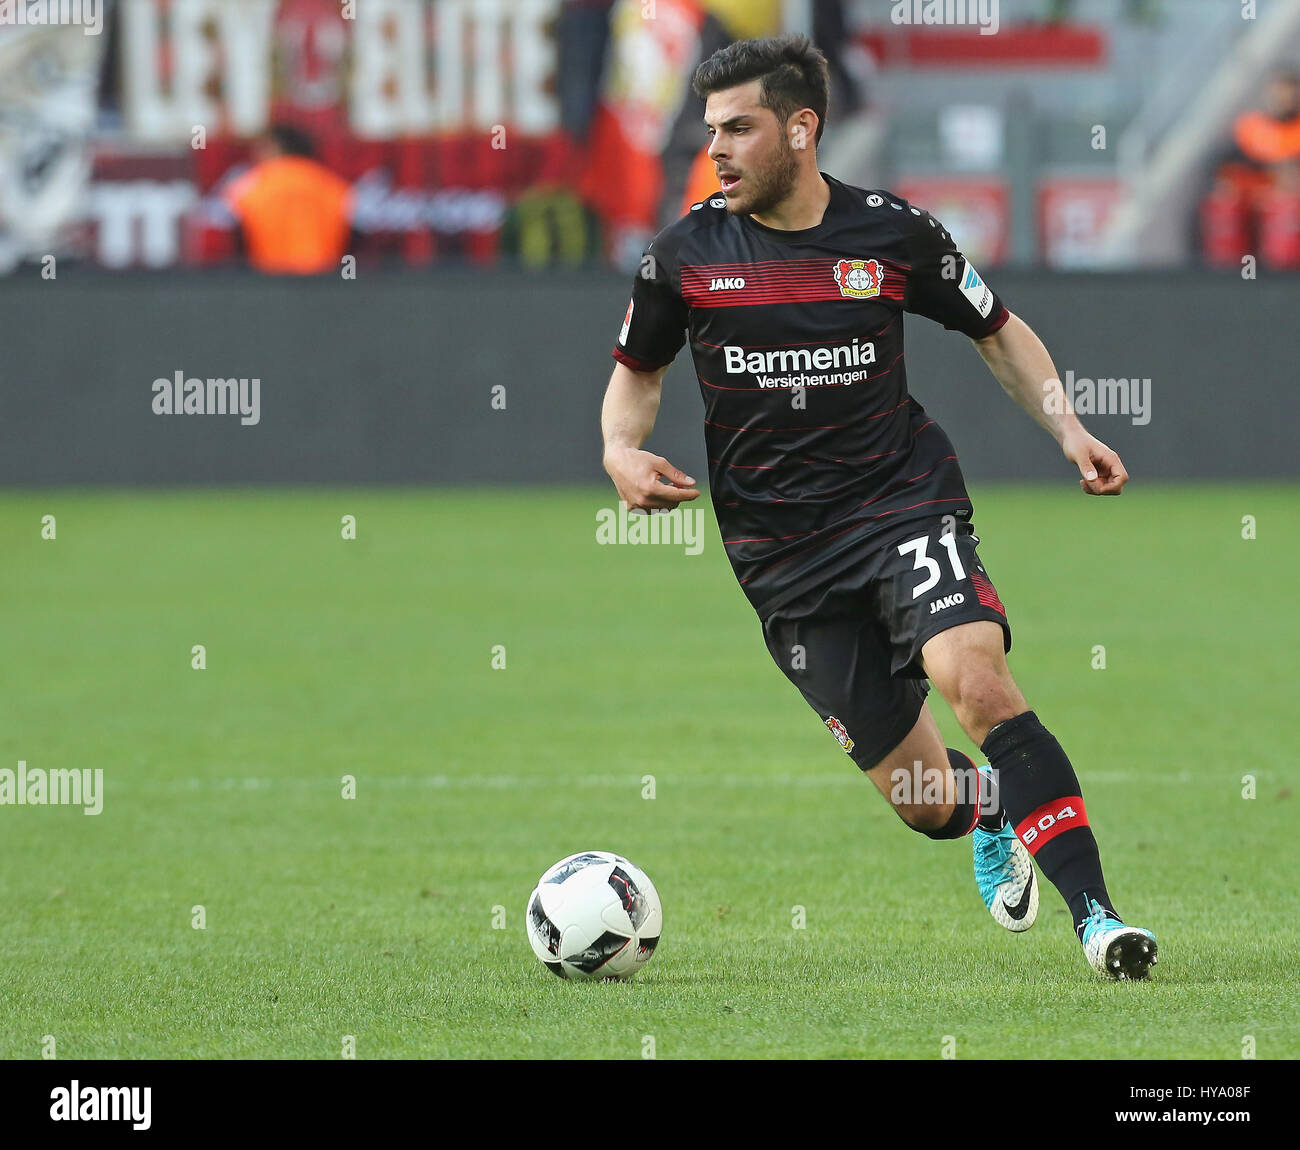 Leverkusen, Germany2nd April 2017, Bundesliga, matchday 2, Bayer 04 Leverkusen vs VfL Wolfsburg: Kevin Volland (B04) Stock Photo